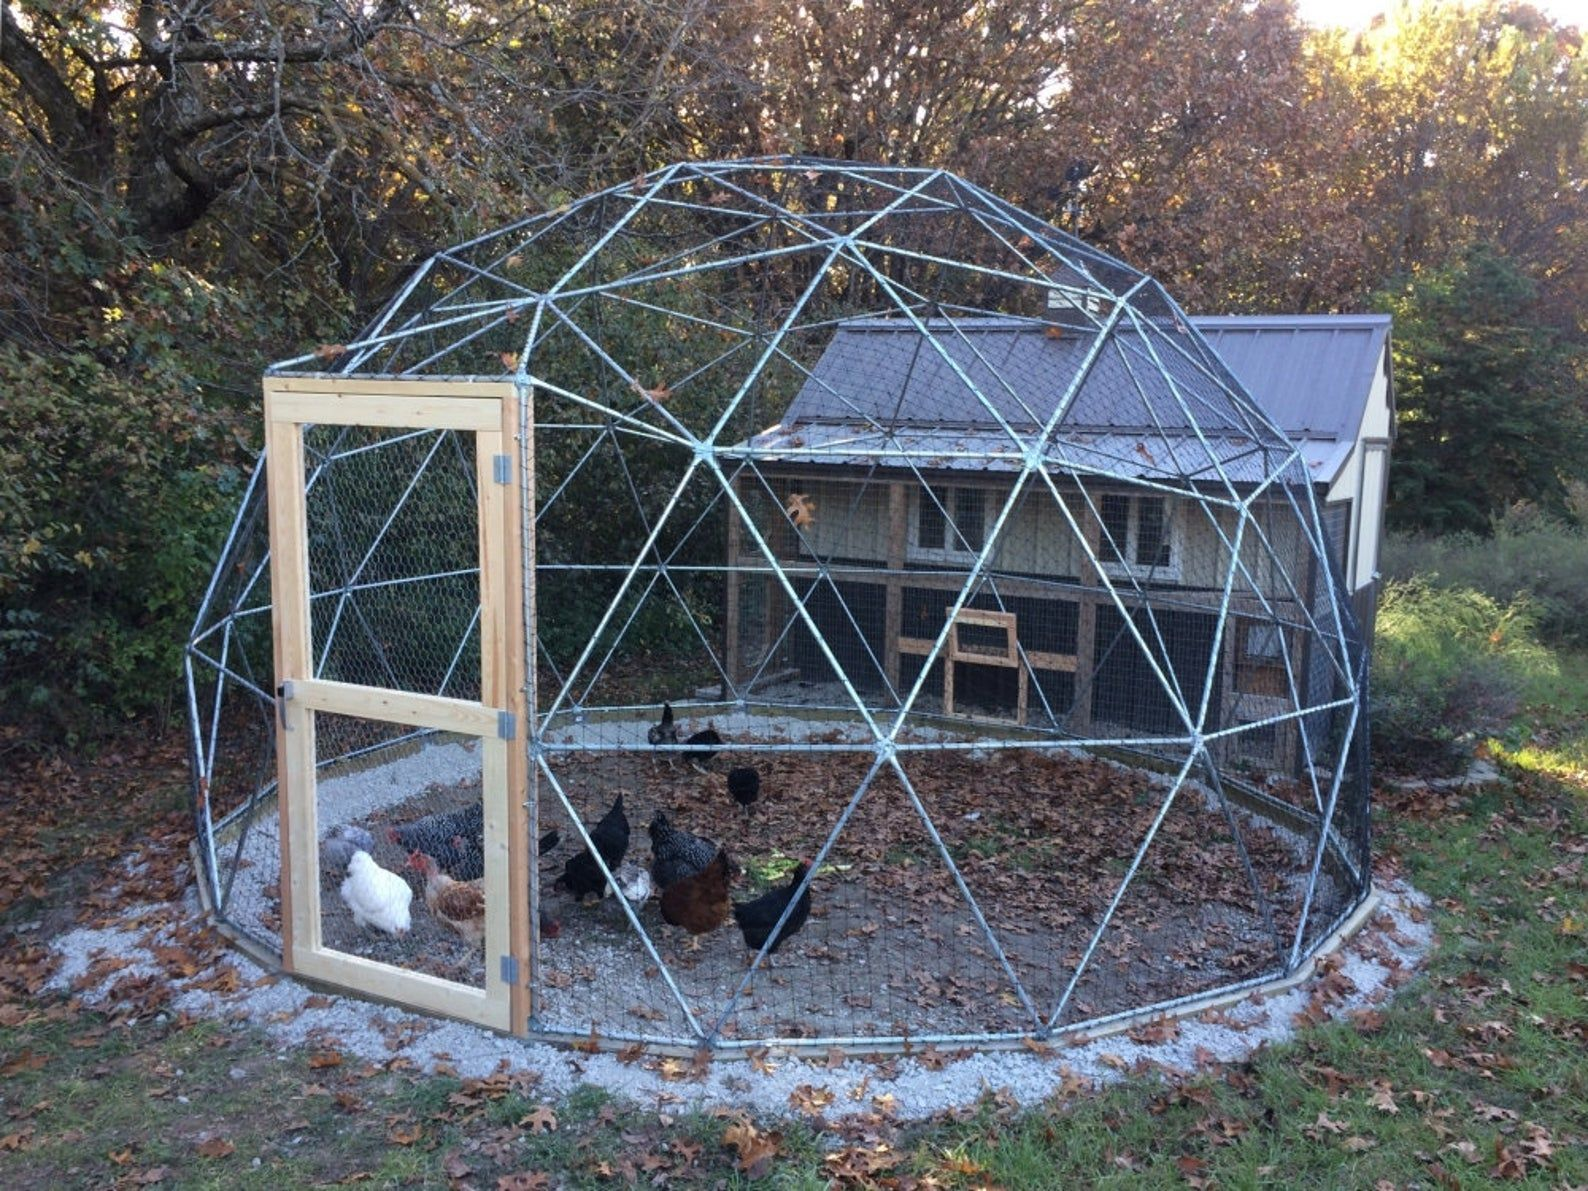 16 Ft Geodesic Dome Outdoor Aviary Flight Cage Animal Pen Etsy Animal Pen Flight Cage Geodesic Dome